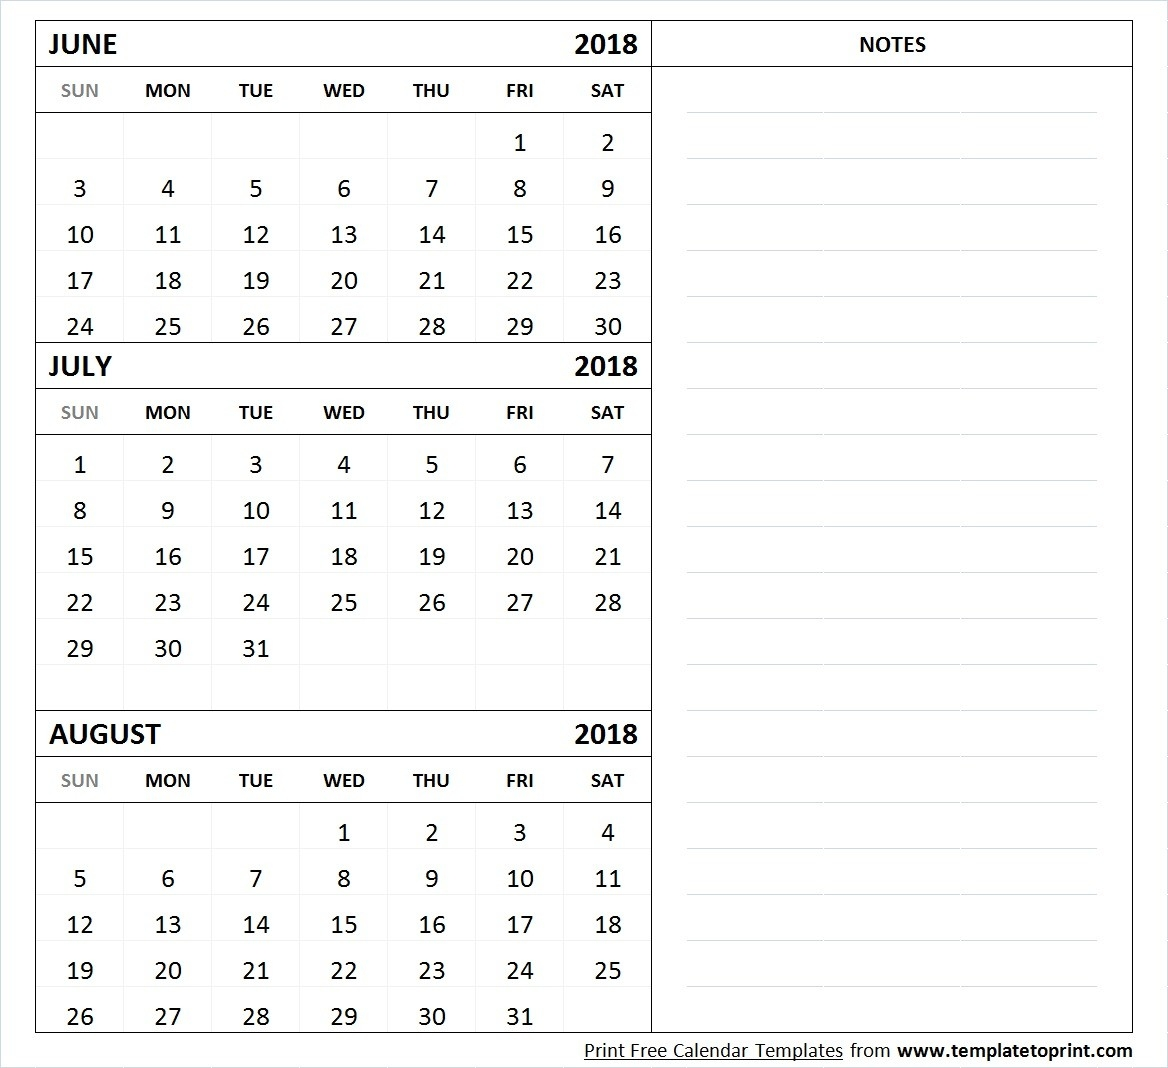 June July August 2018 Calendar Template Printable | 3 Month-June July August Calendar Template